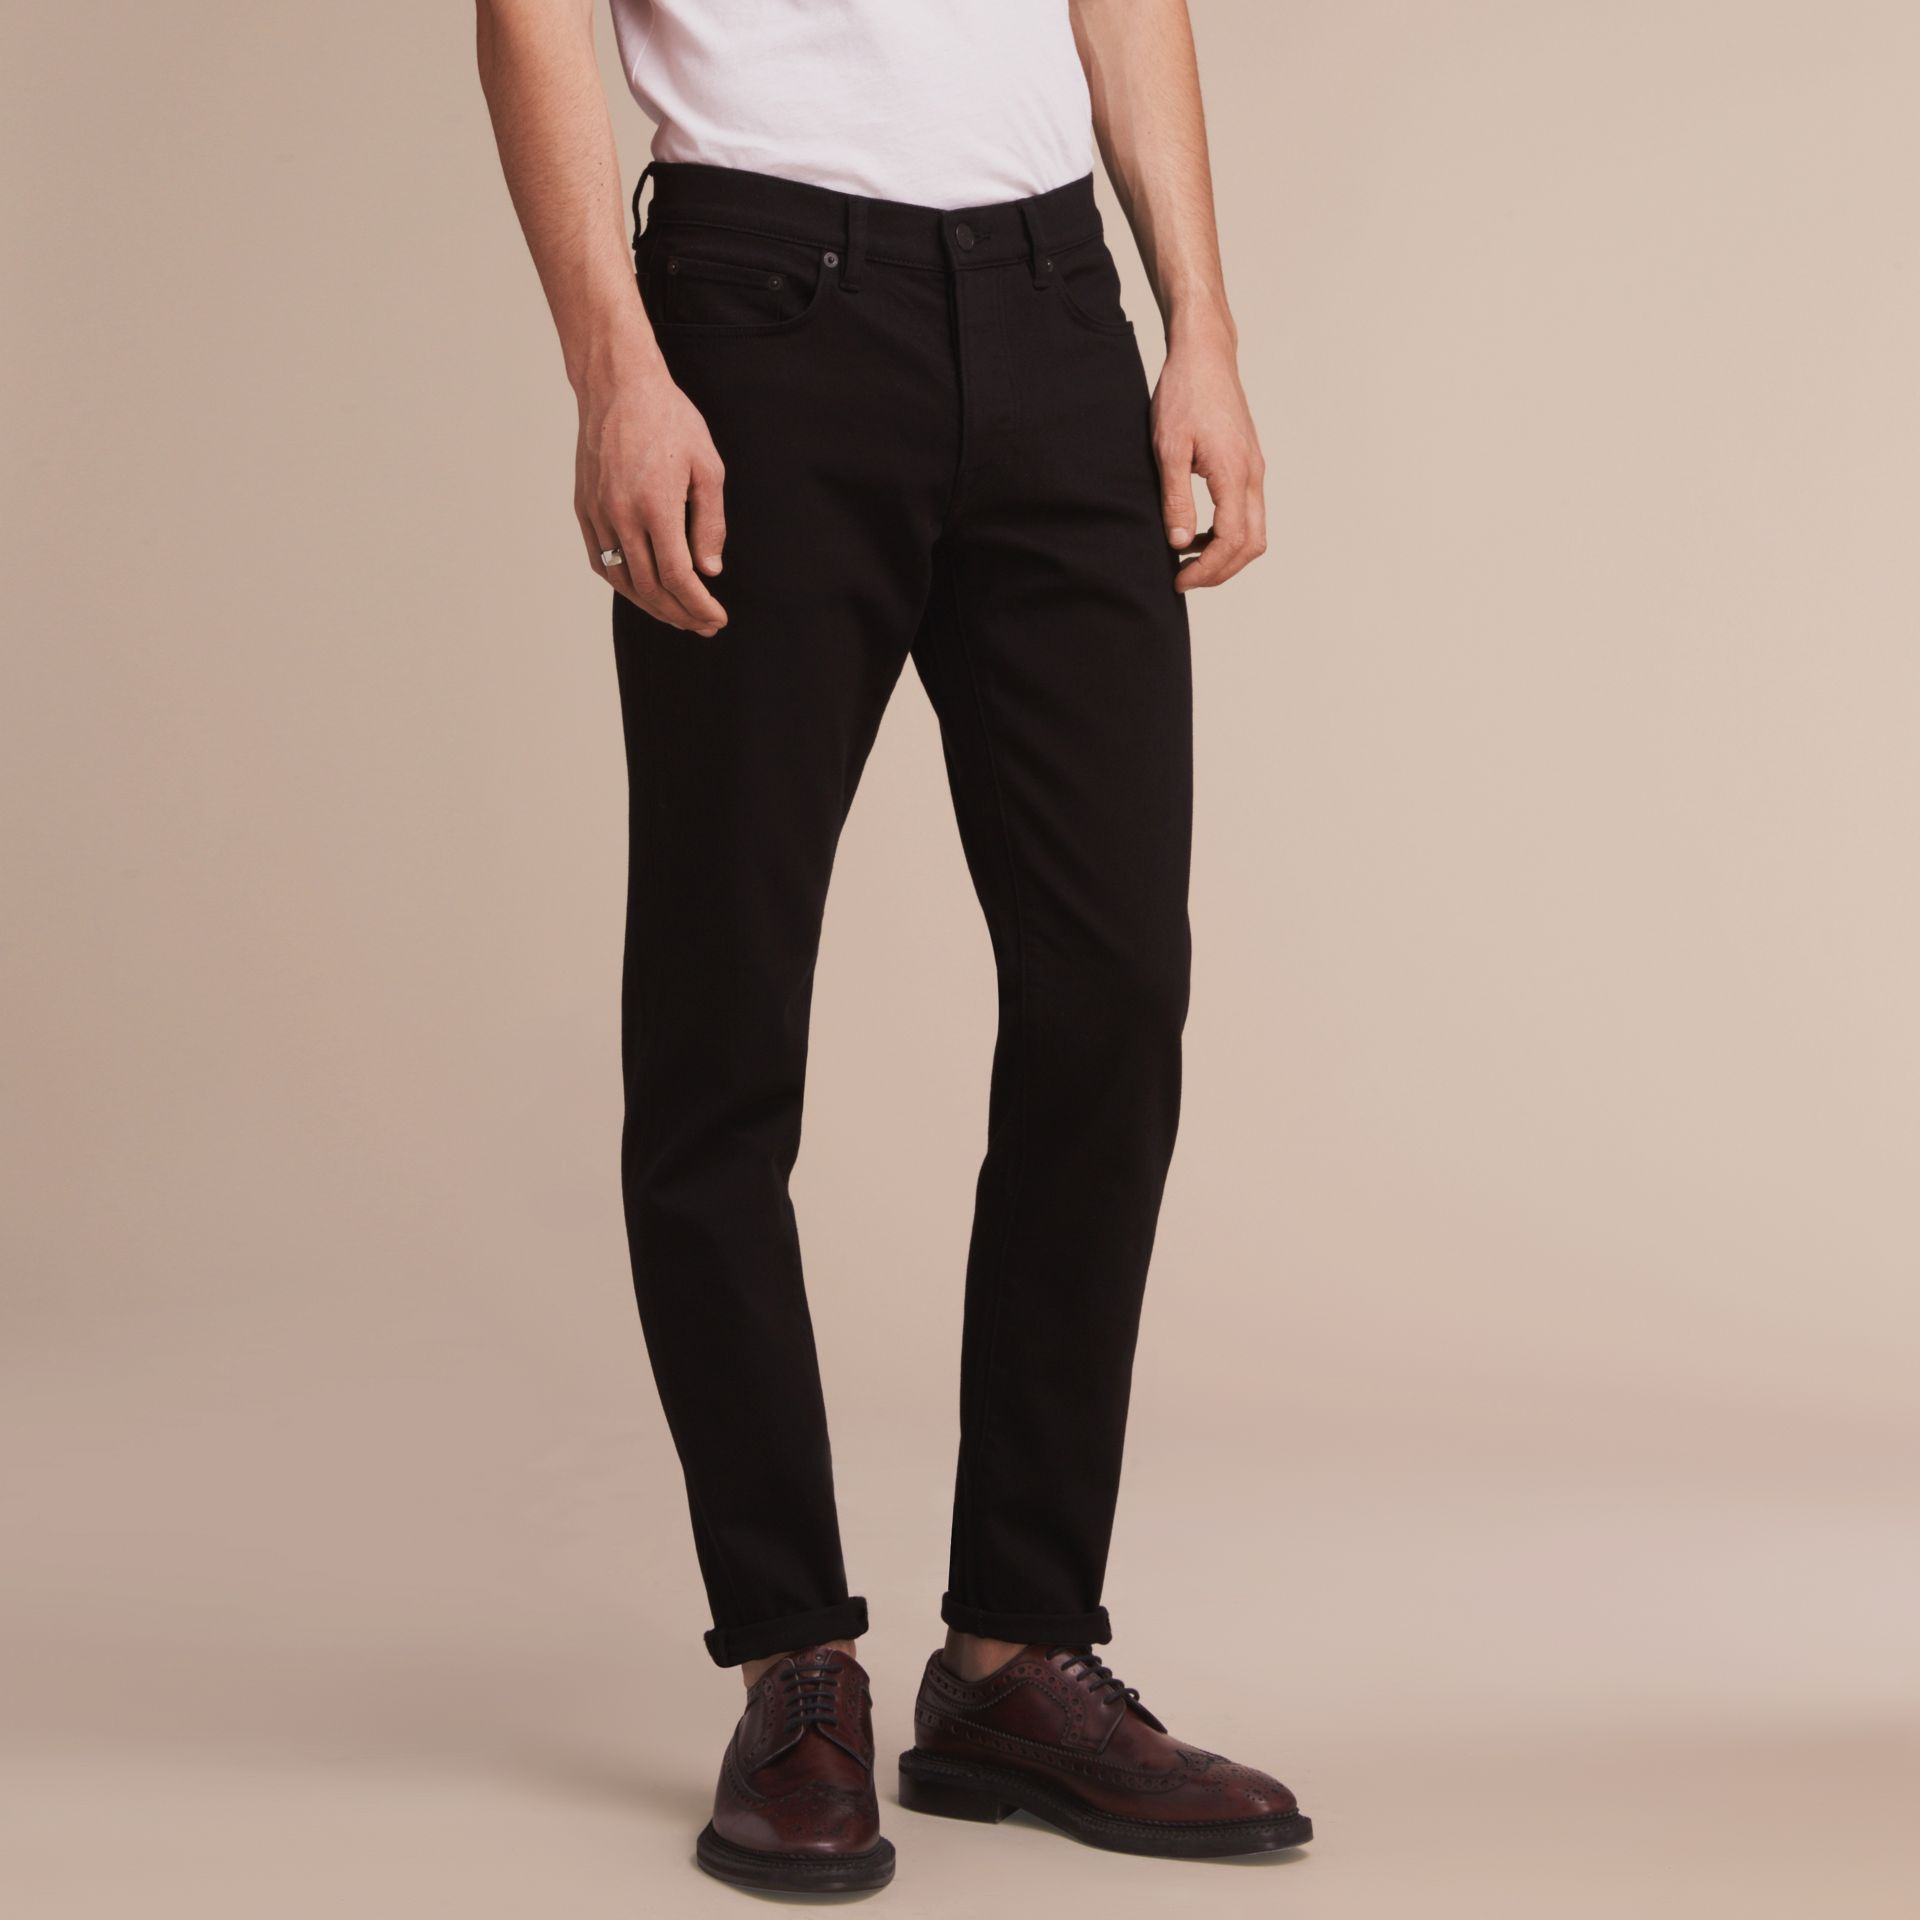 Relaxed Fit Stretch Jeans in Black - Men | Burberry - gallery image 7